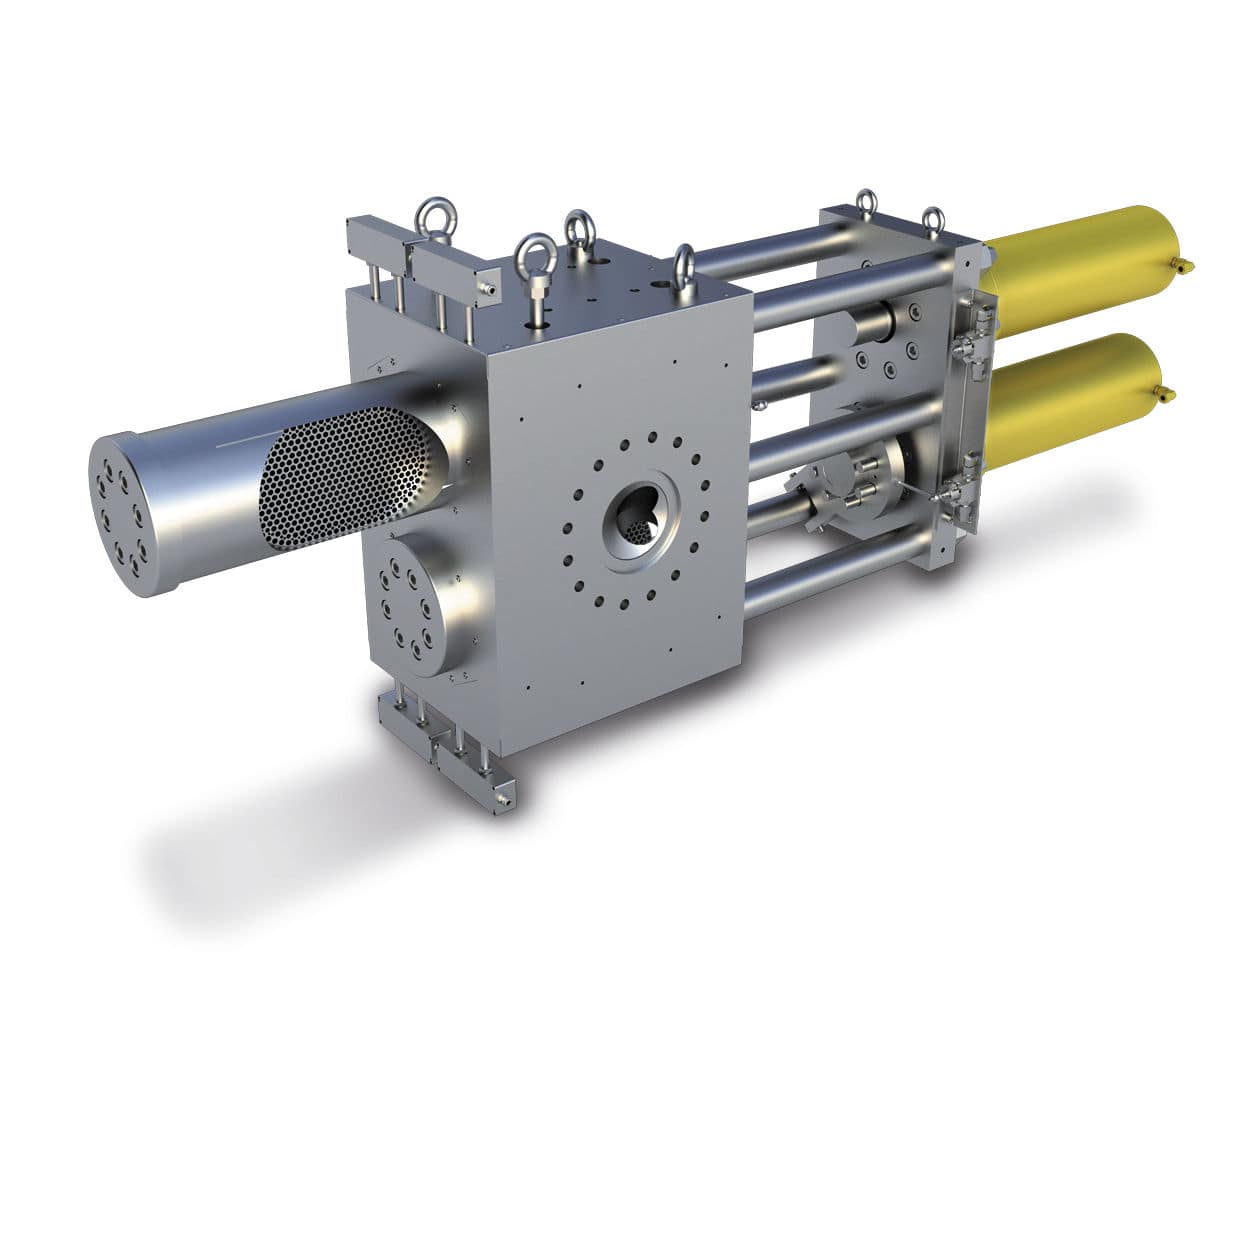 Global Continuous Screen Changers Market 2020 Business Outlook with  COVID-19 Scenario – Nordson, HITECH, Gneuss, Maag, Erema, JC Times, Batte  Mechanical – The Courier